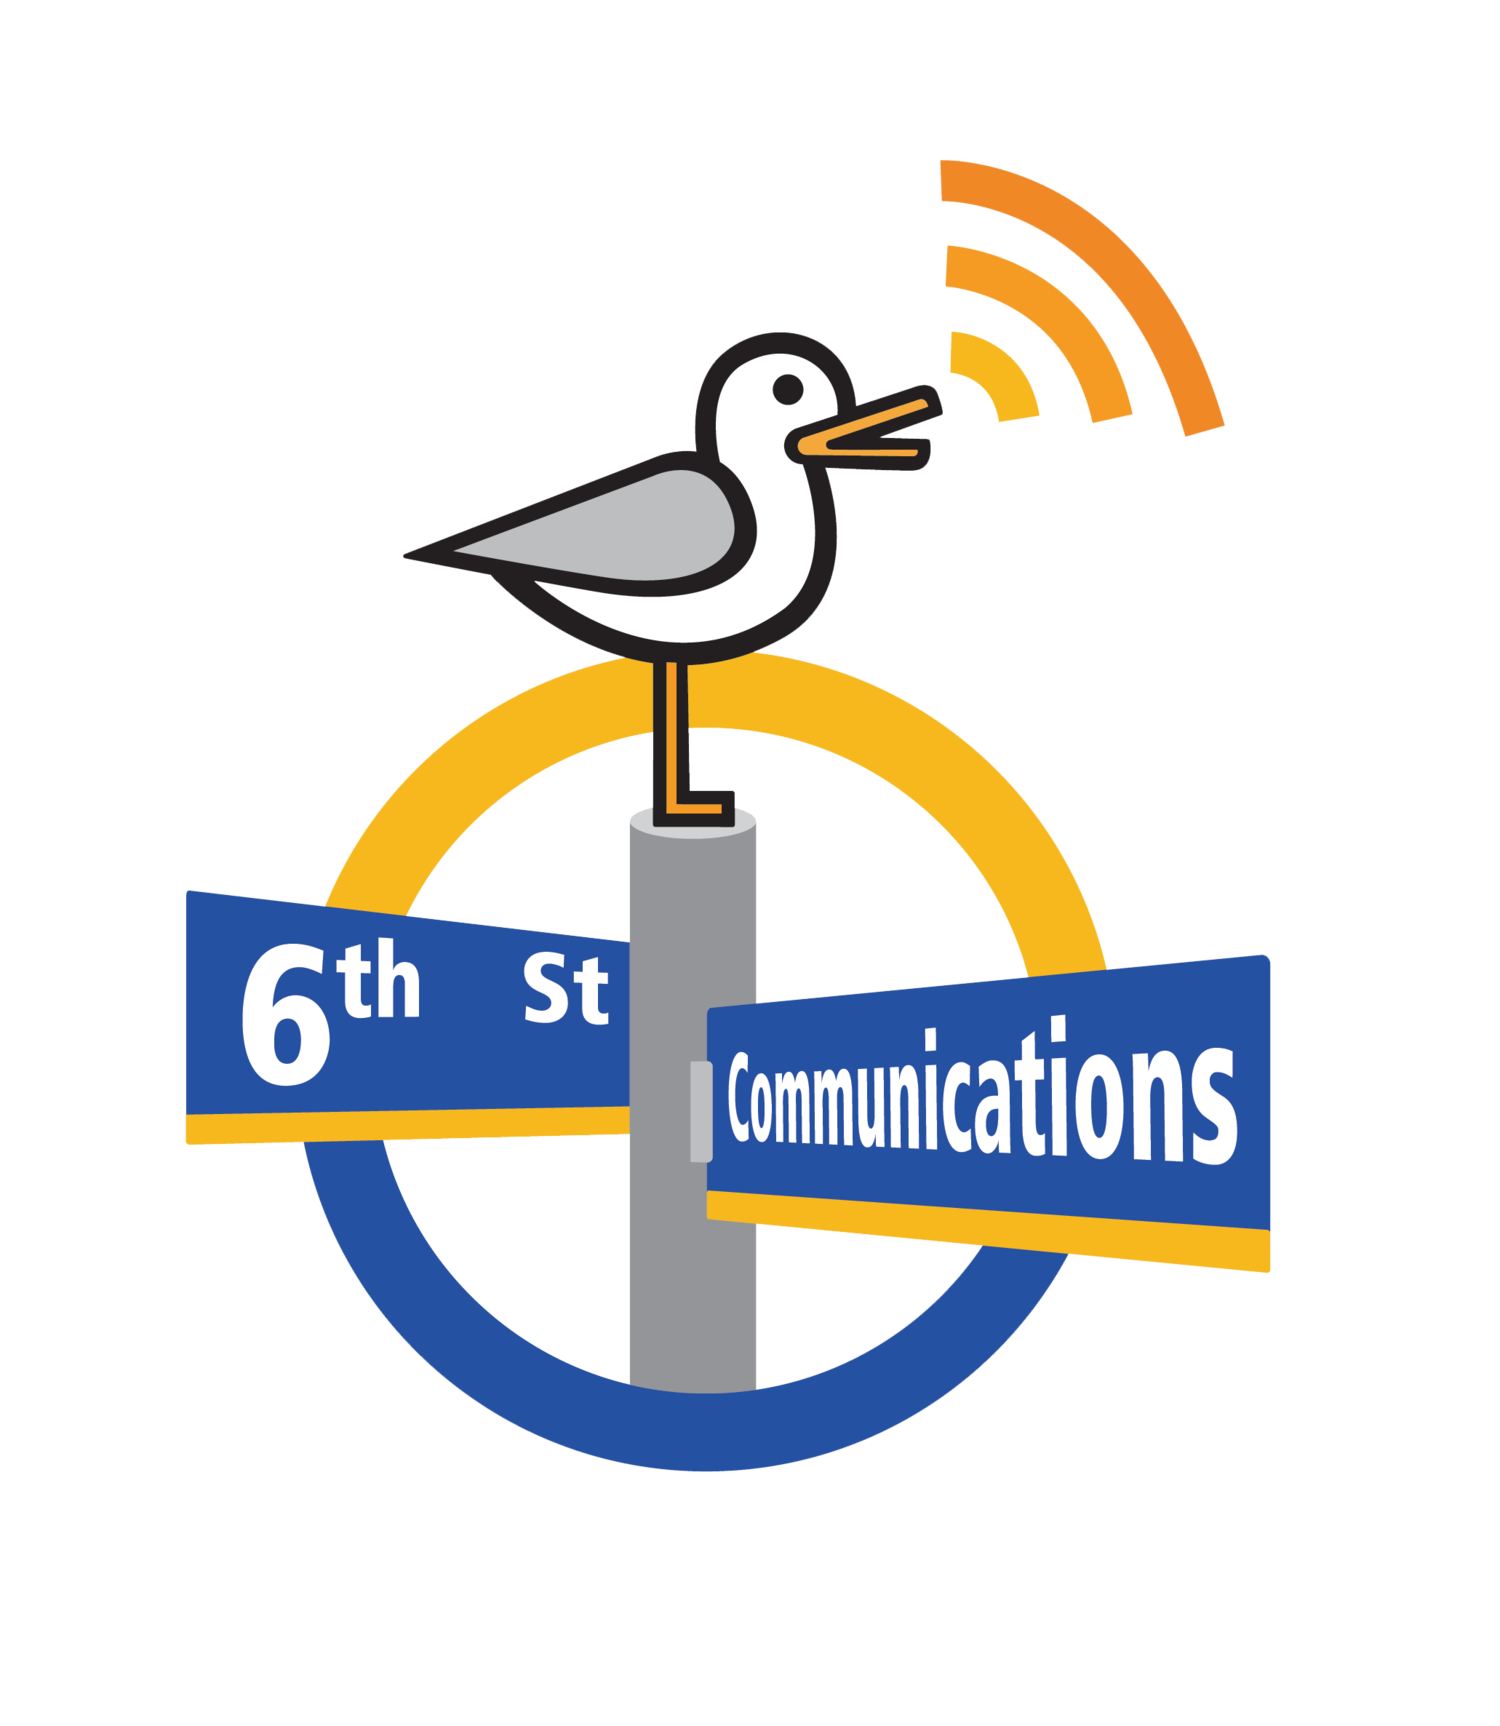 6th St Communications